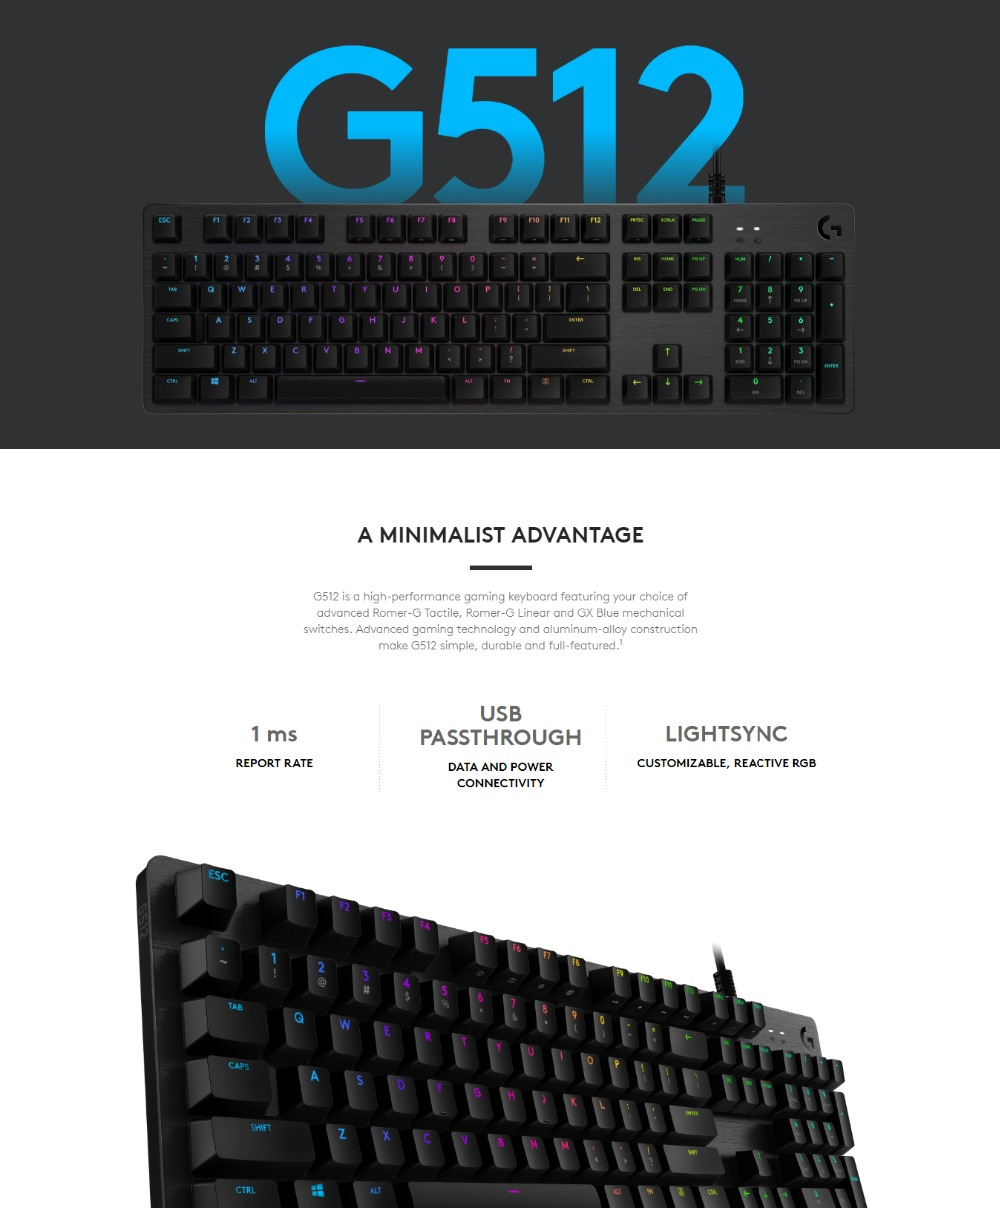 1a37858b913 Specifications of Logitech G512 CARBON Full Size RGB Mechanical Gaming  Keyboard with ROMER-G Switch